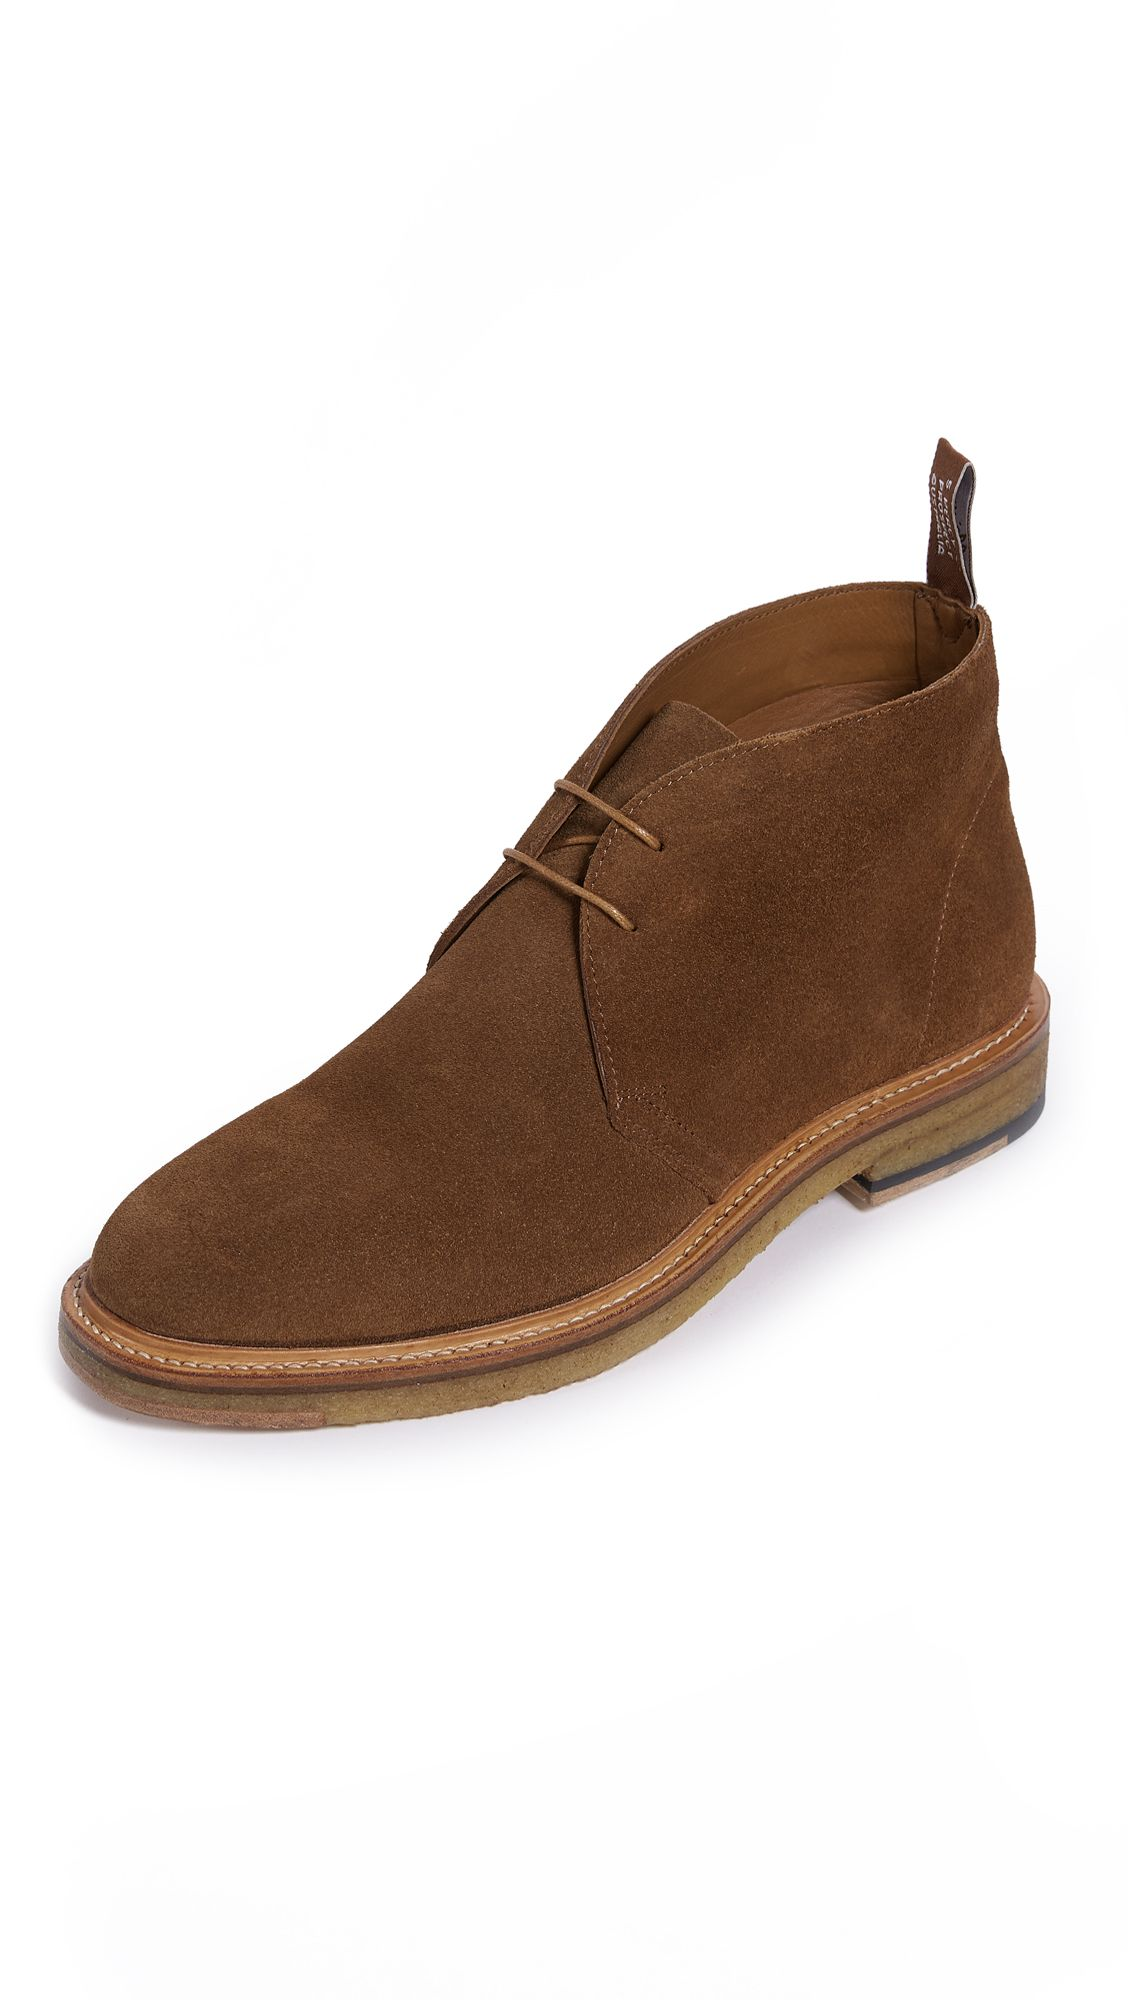 537121984ab1 R.M. WILLIAMS TANAMI SUEDE CHUKKA BOOTS.  r.m.williams  shoes ...